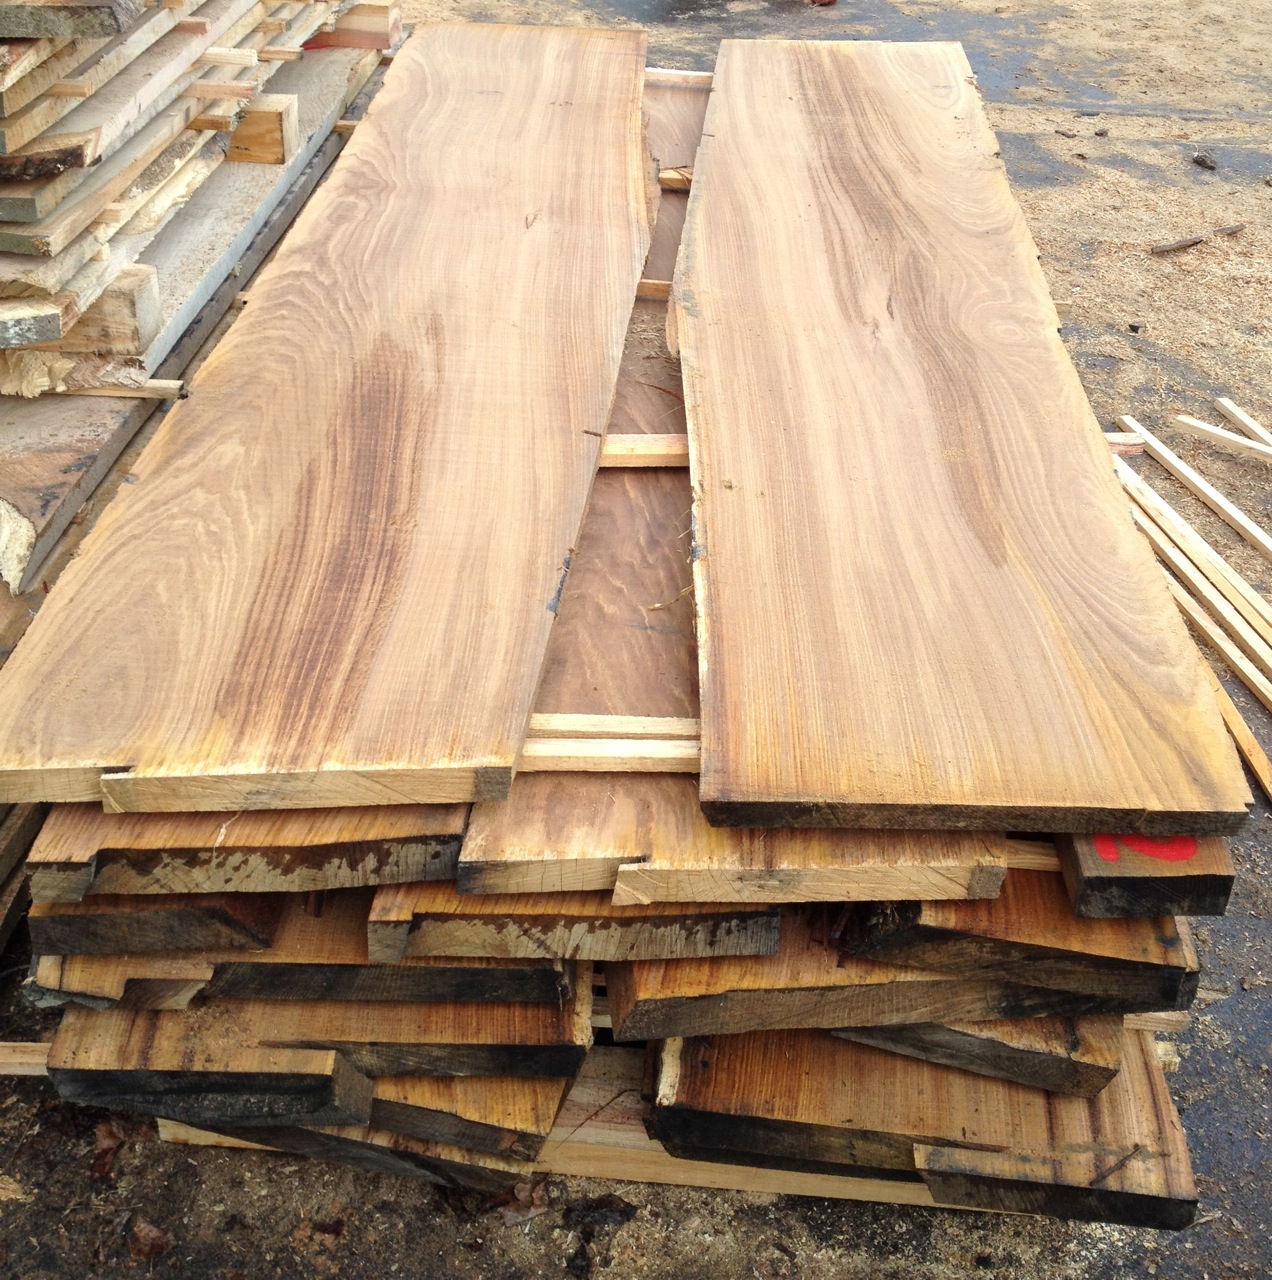 Chestnut boards